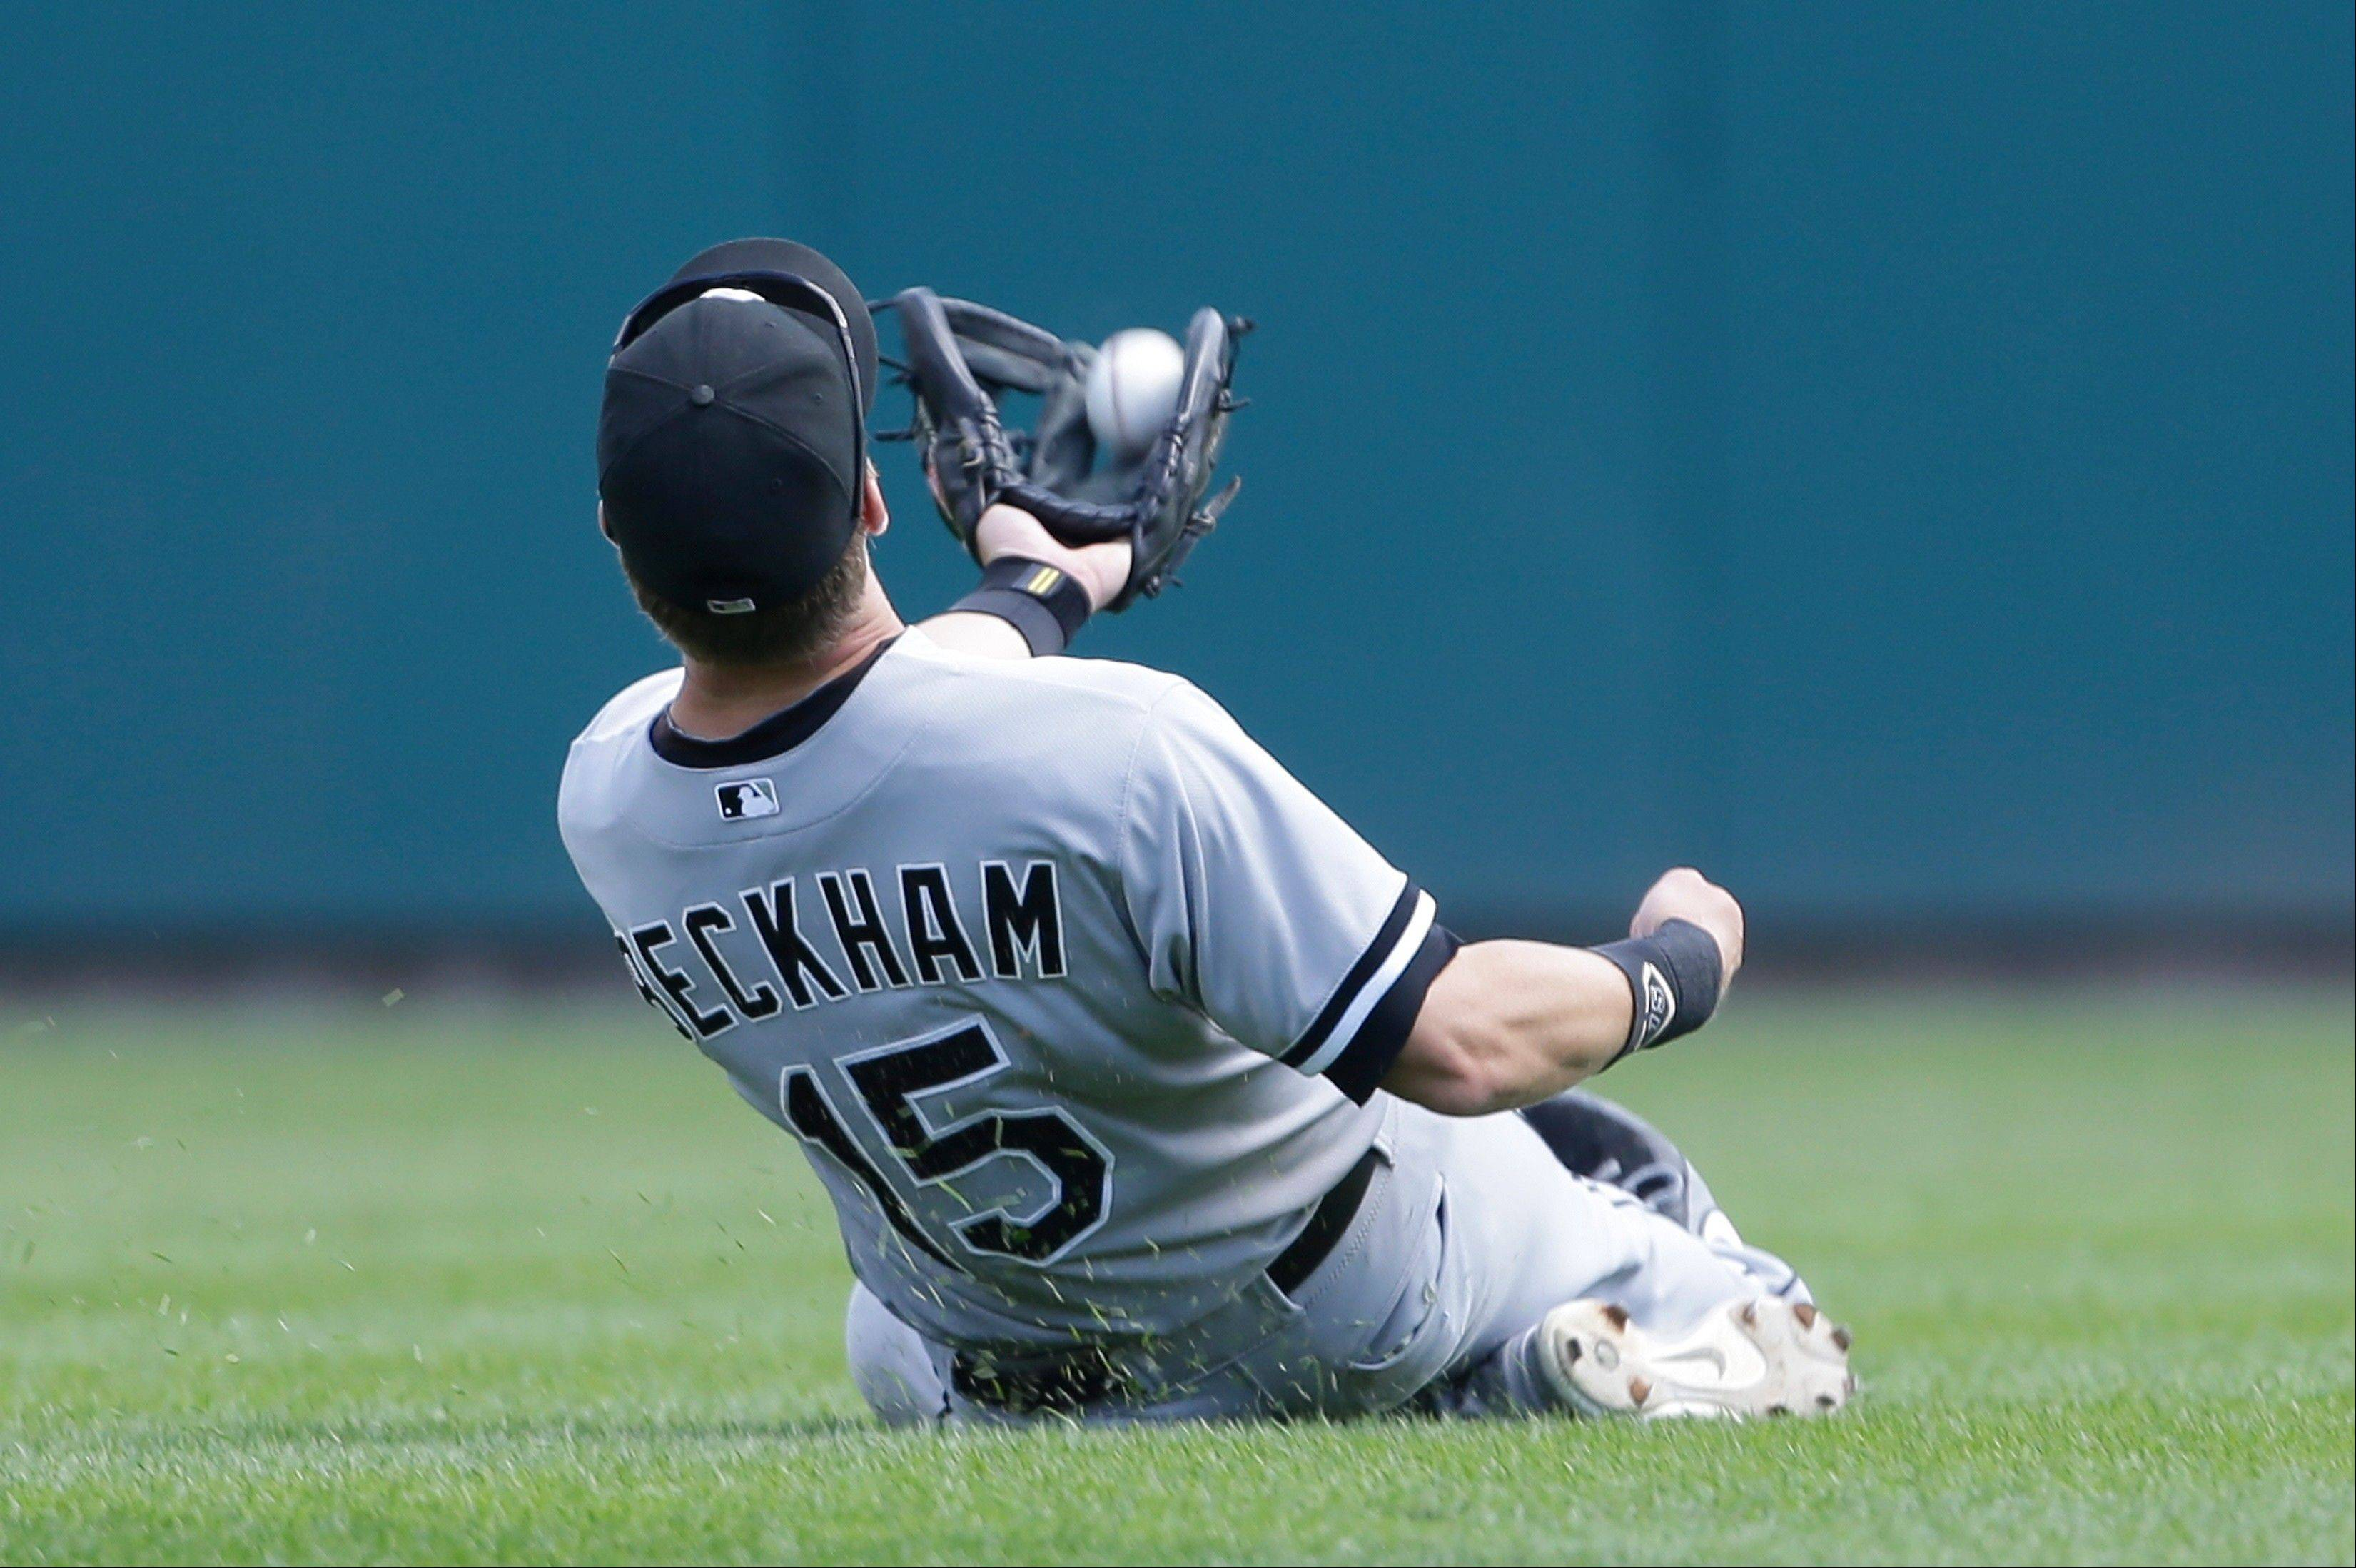 White Sox second baseman Gordon Beckham makes a sliding, over-the-shoulder catch of a Prince Fielder popup in the eighth inning of Sunday's loss to the Tigers.